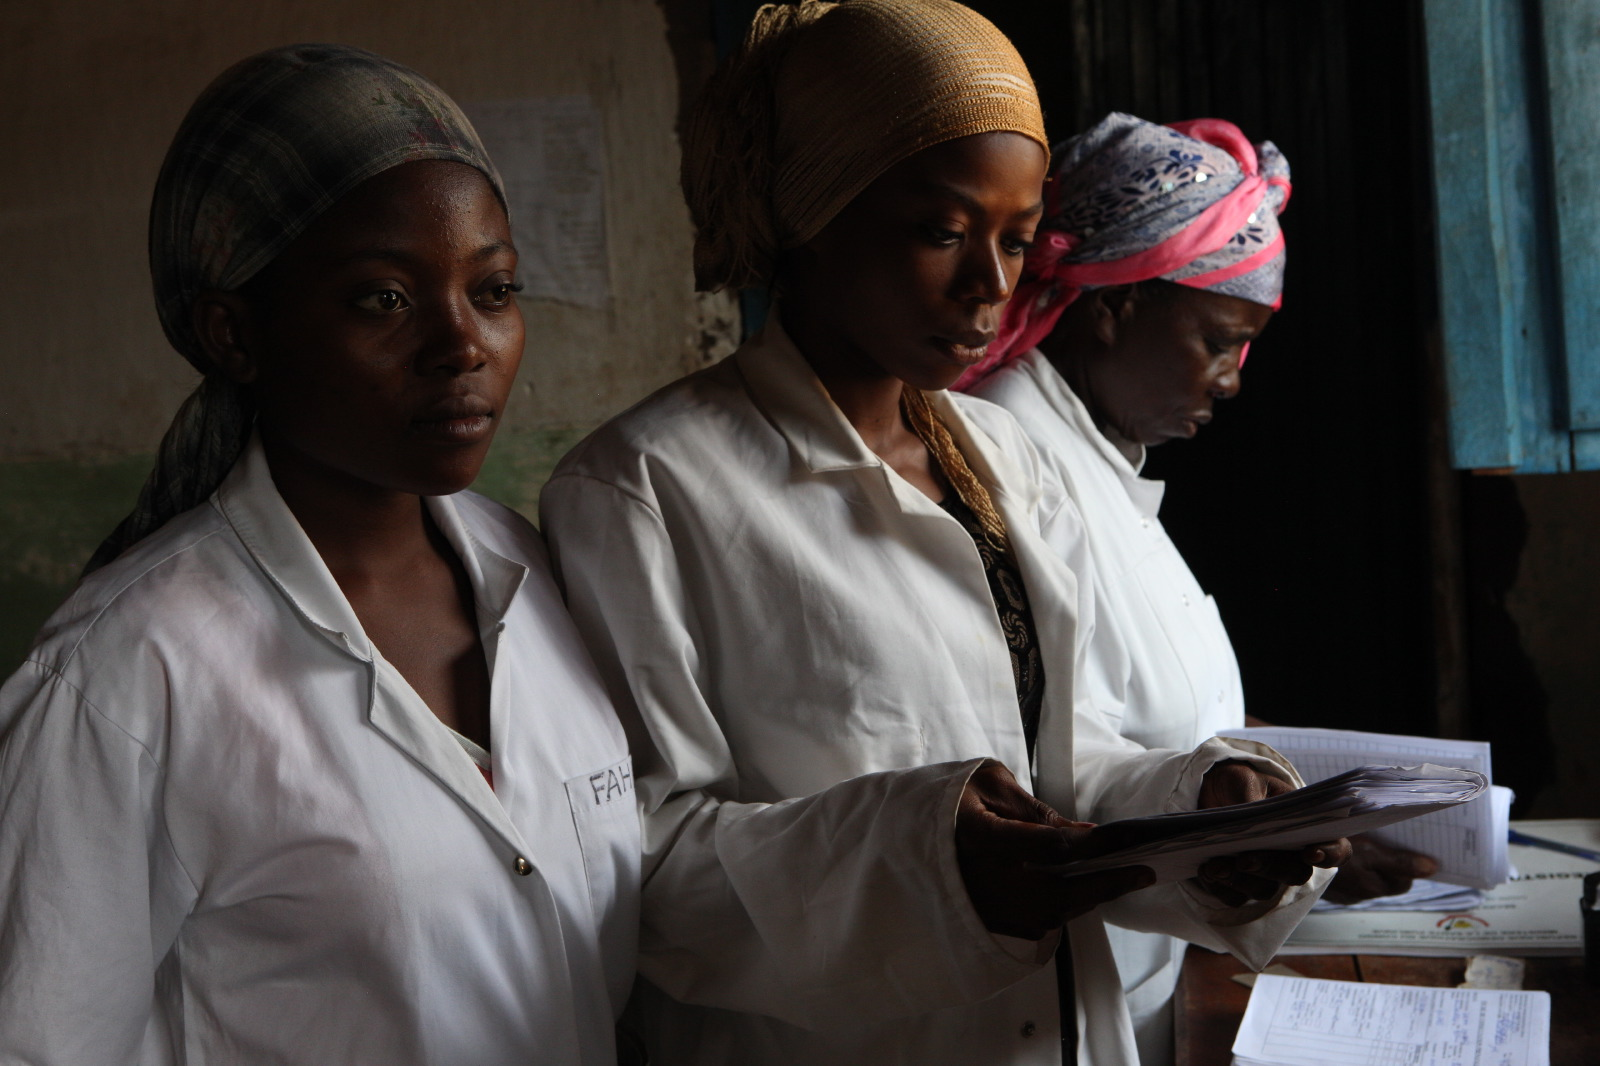 Congolese doctor reviewing case at a women's health center in the DRC.